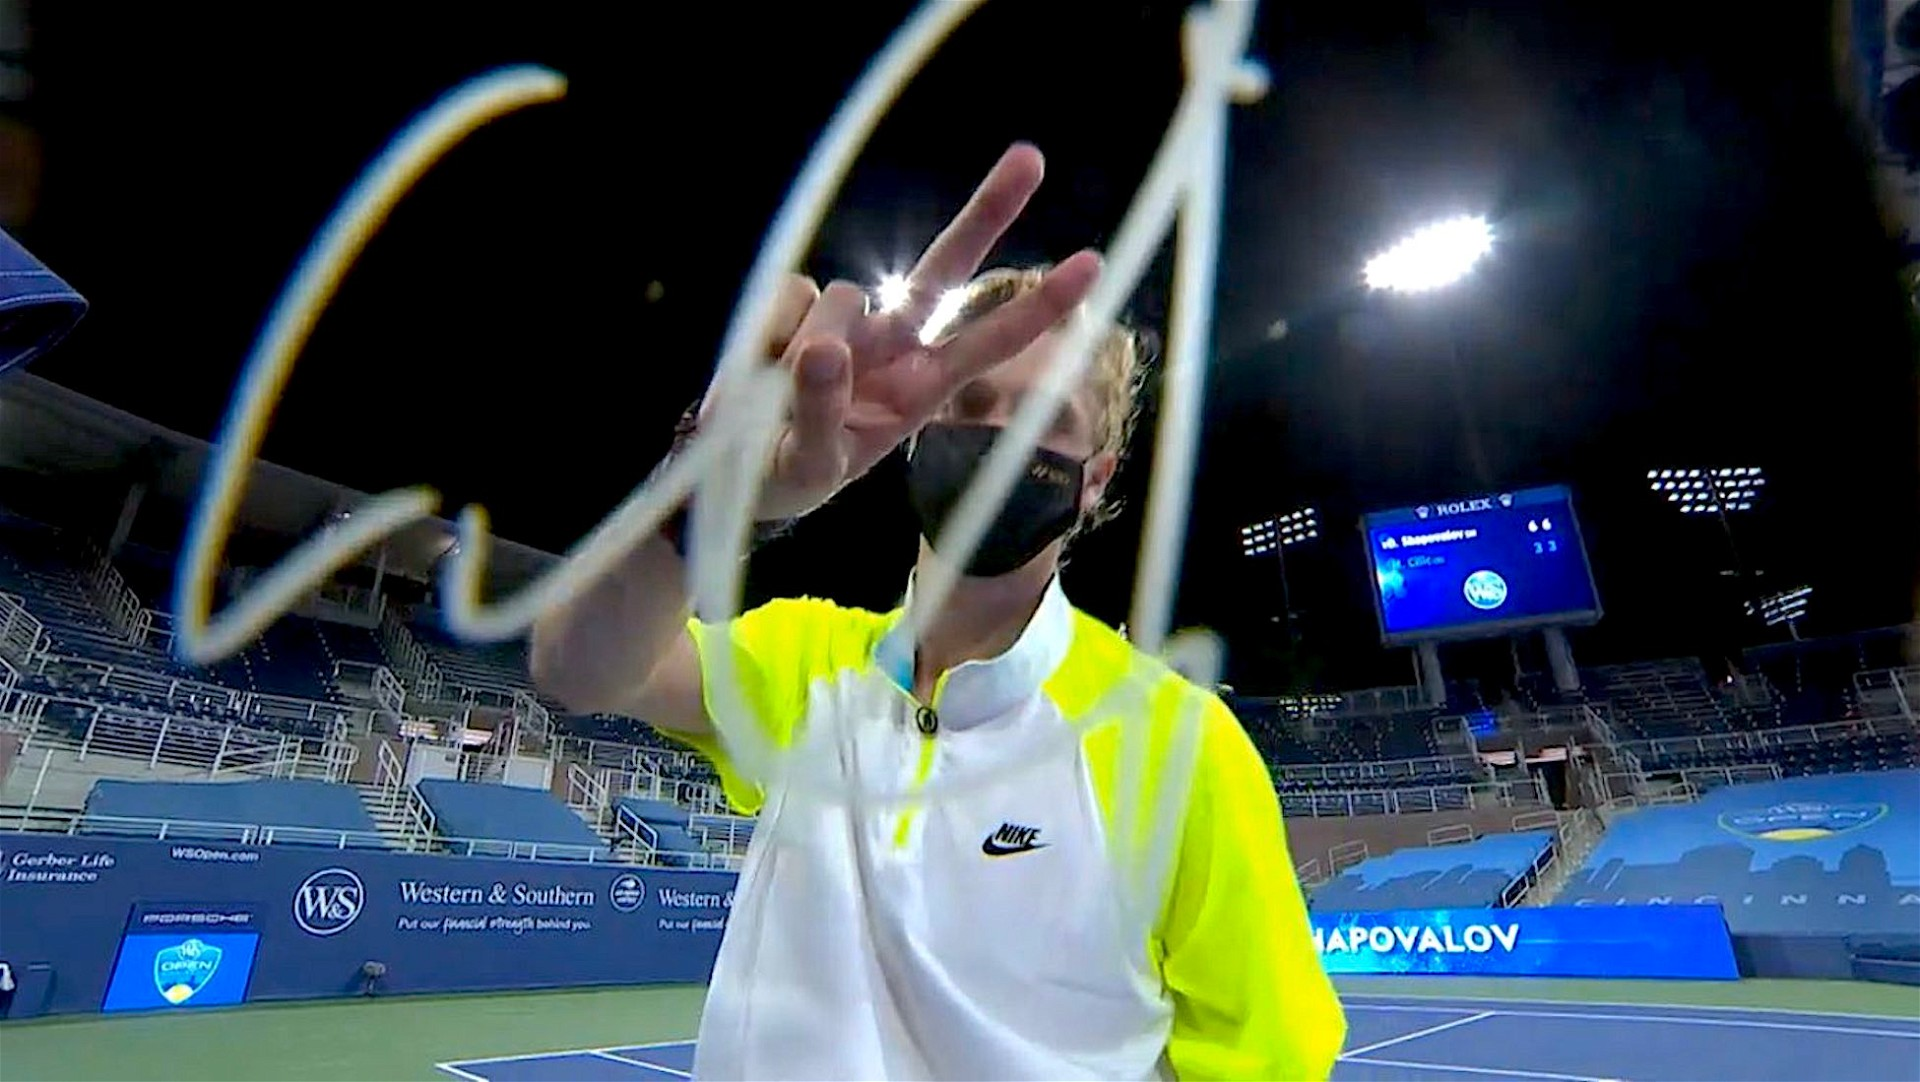 Denis Shapovalov, for Western and Souther Open 2020? New York, August 2020